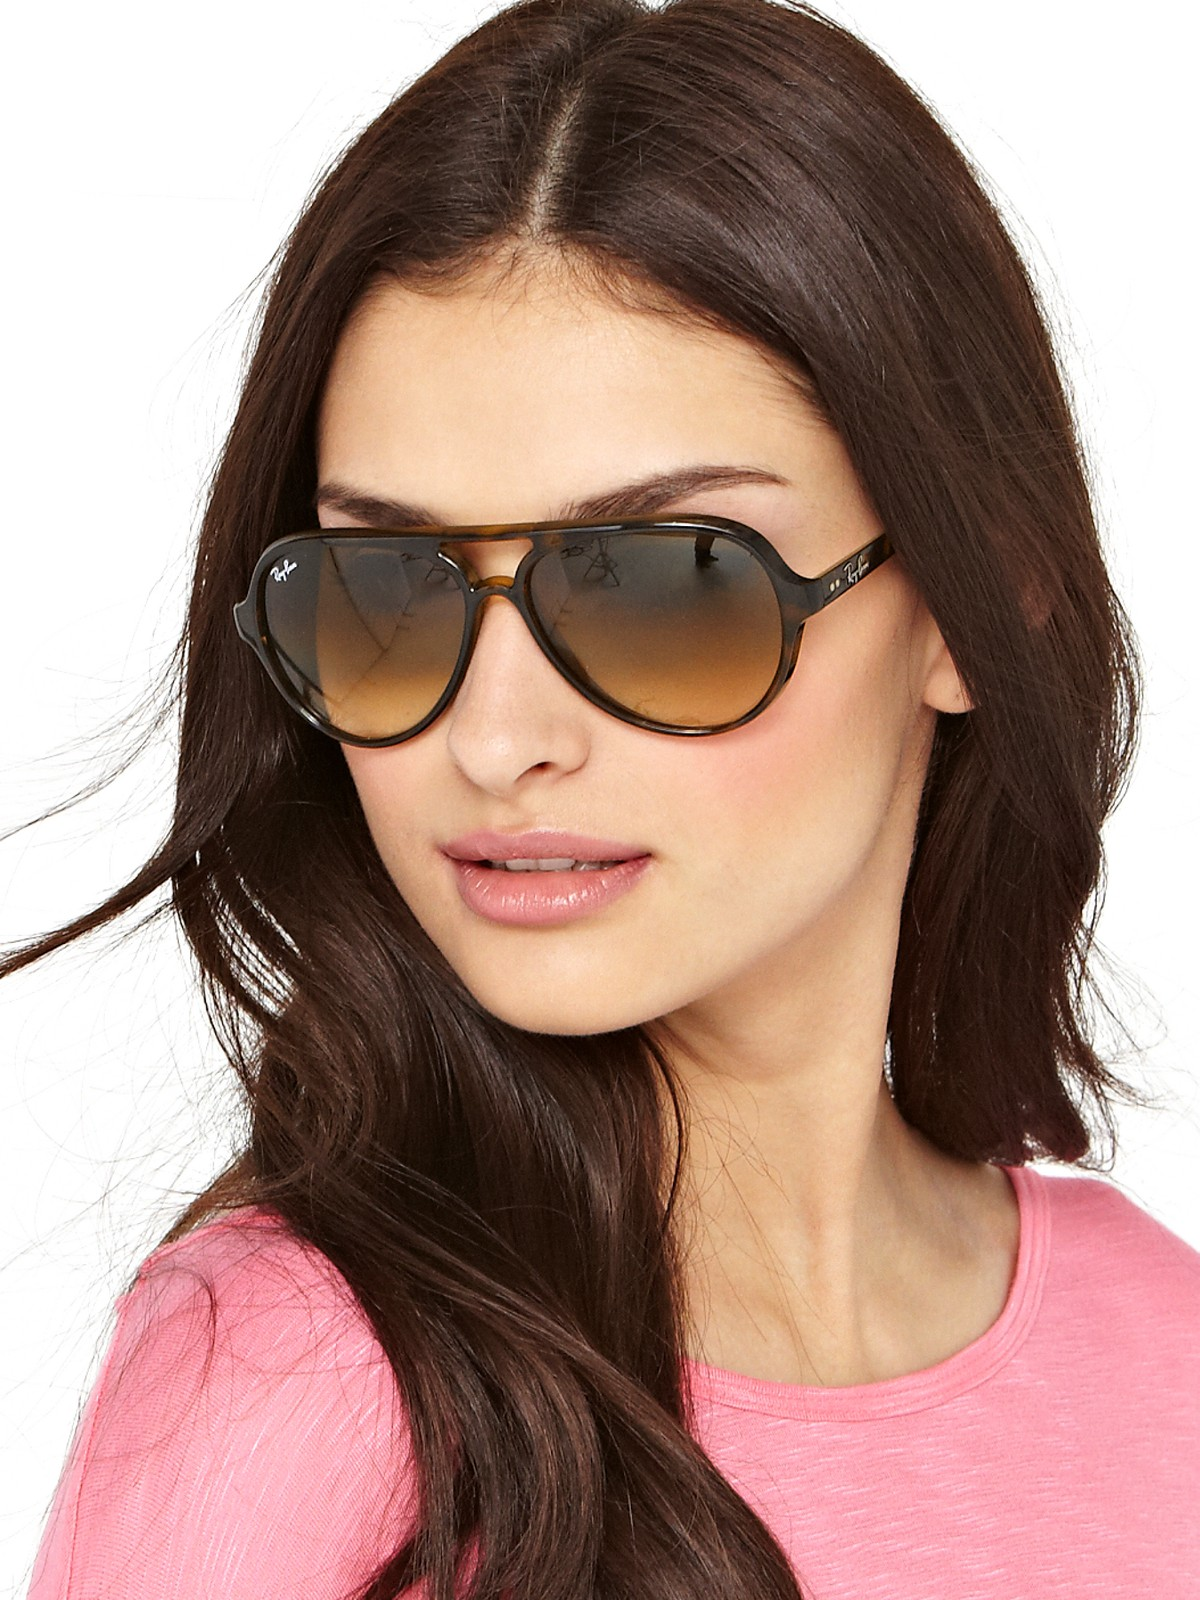 Ban Aviator Sunglasses Women